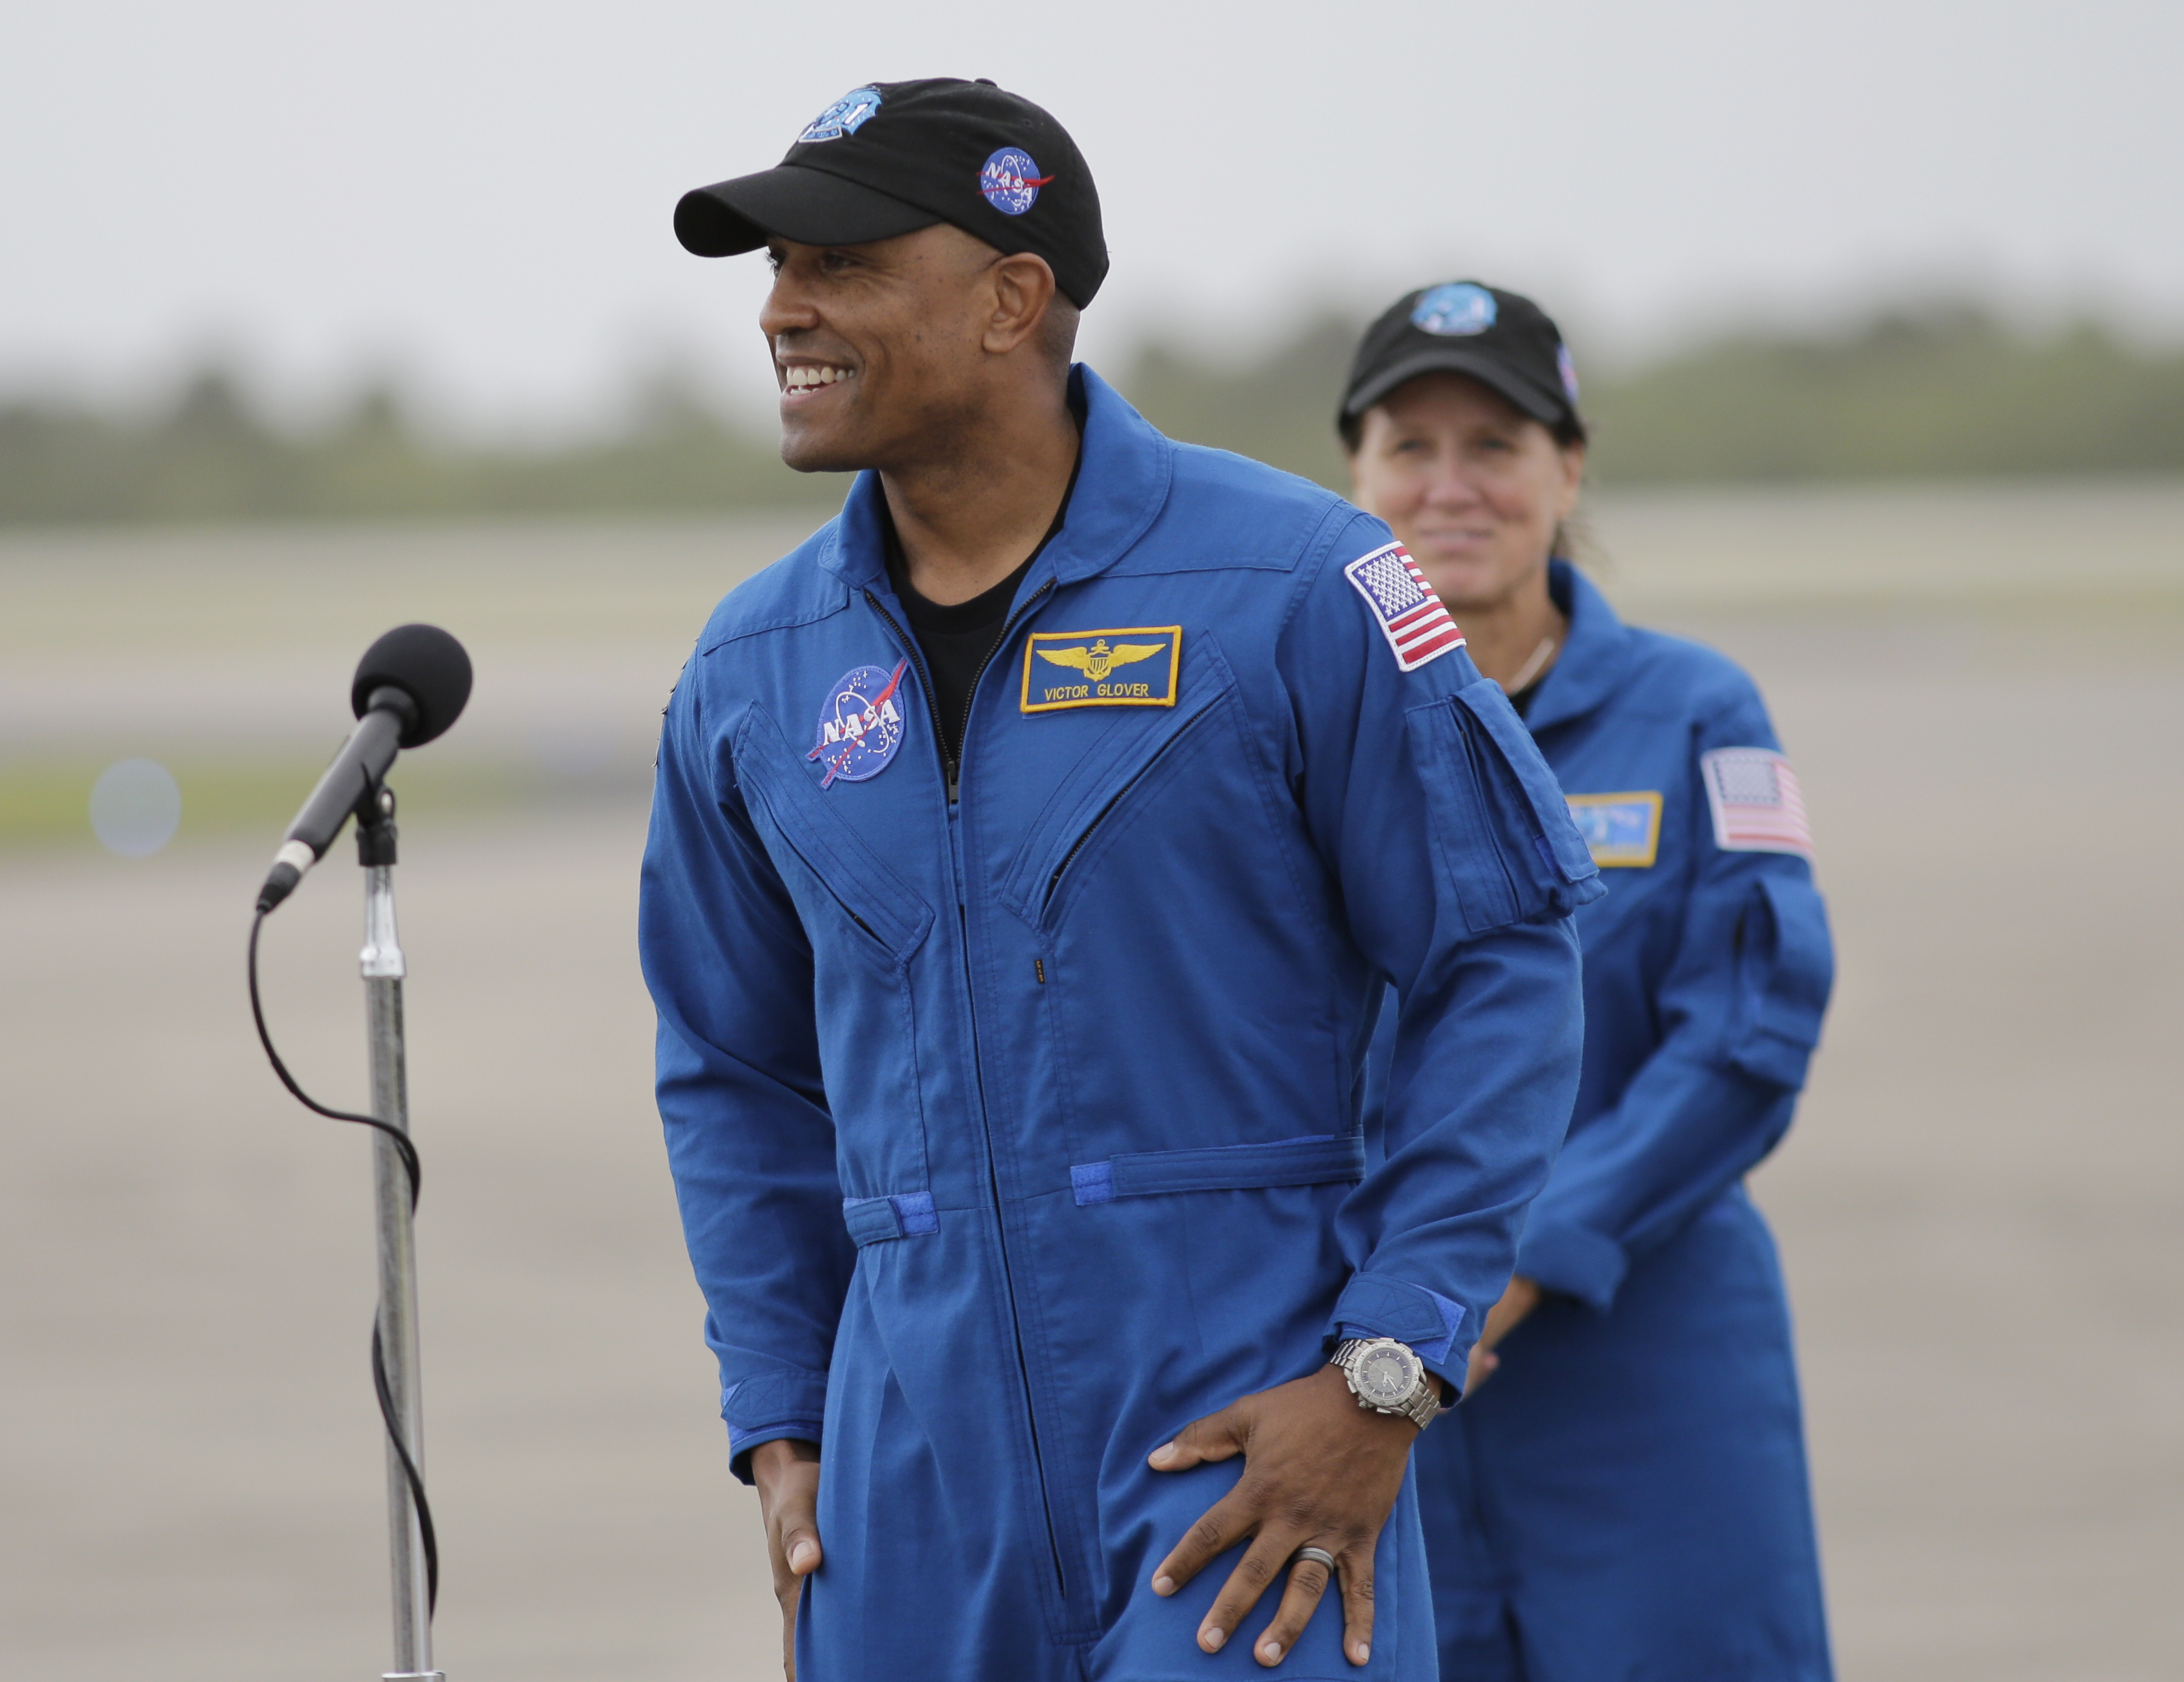 SpaceX Crew Launch Victor Glover